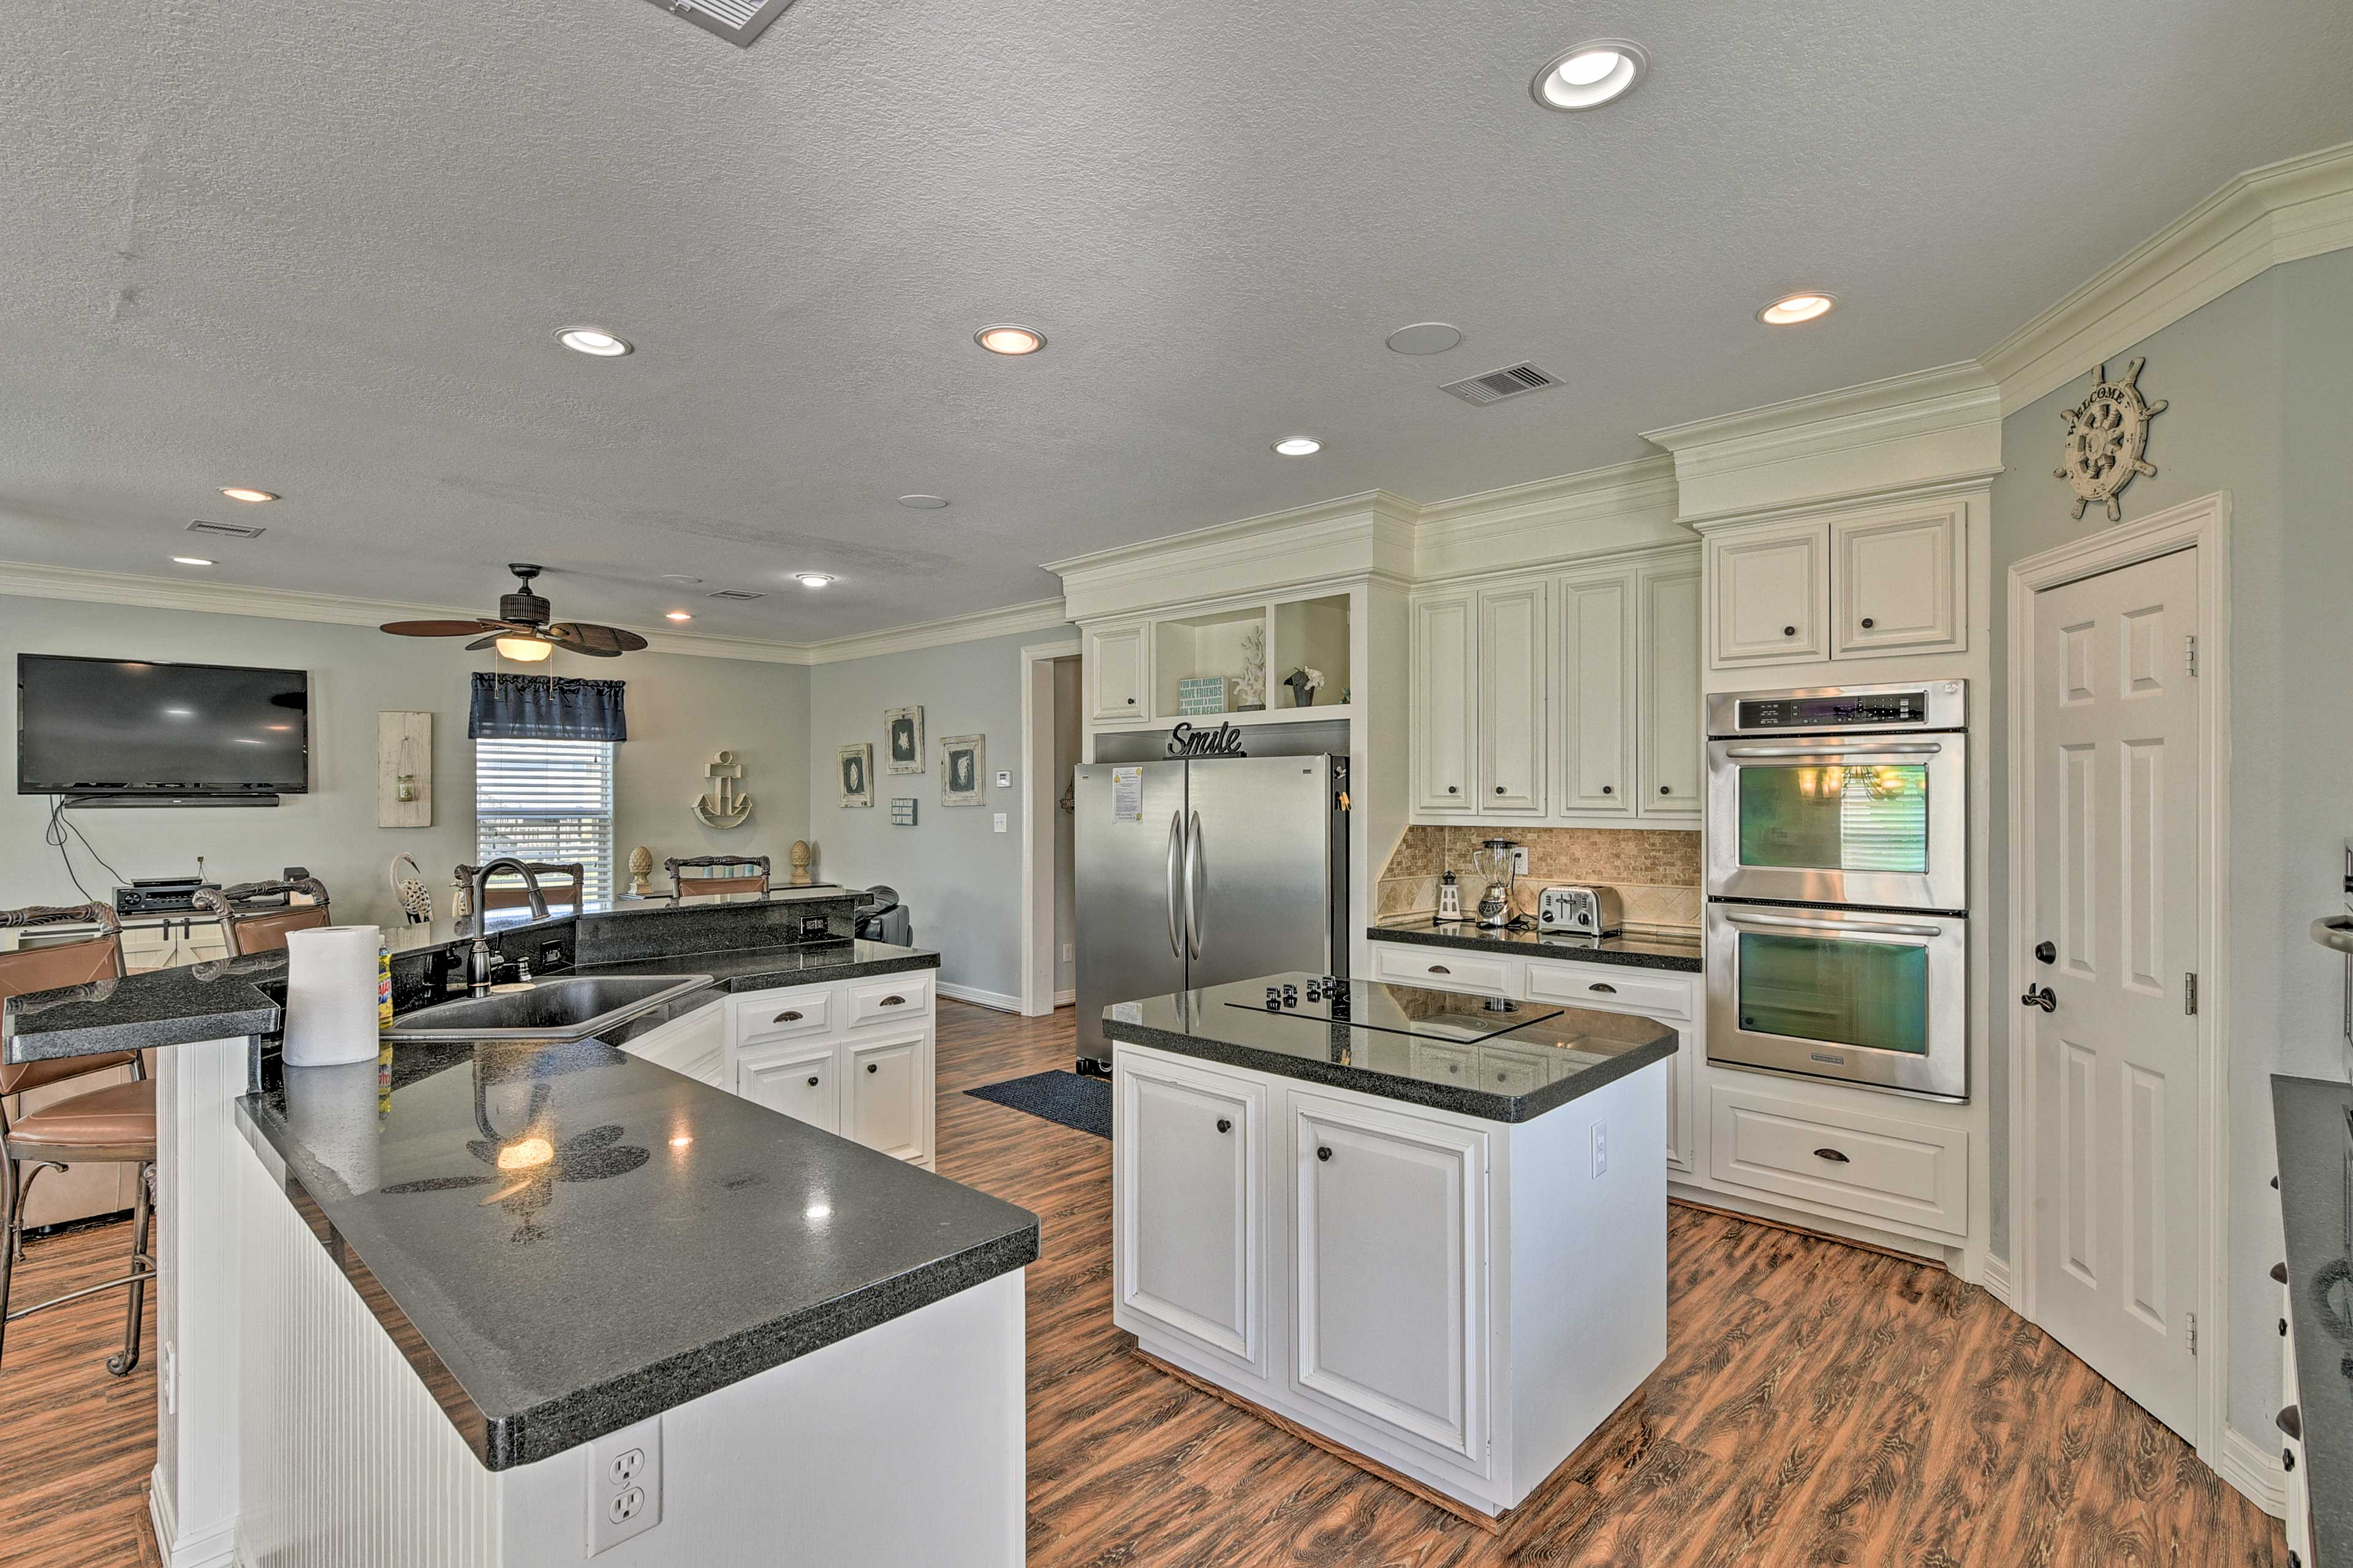 Kitchen | Stainless Steel Appliances | Cooking Basics Provided